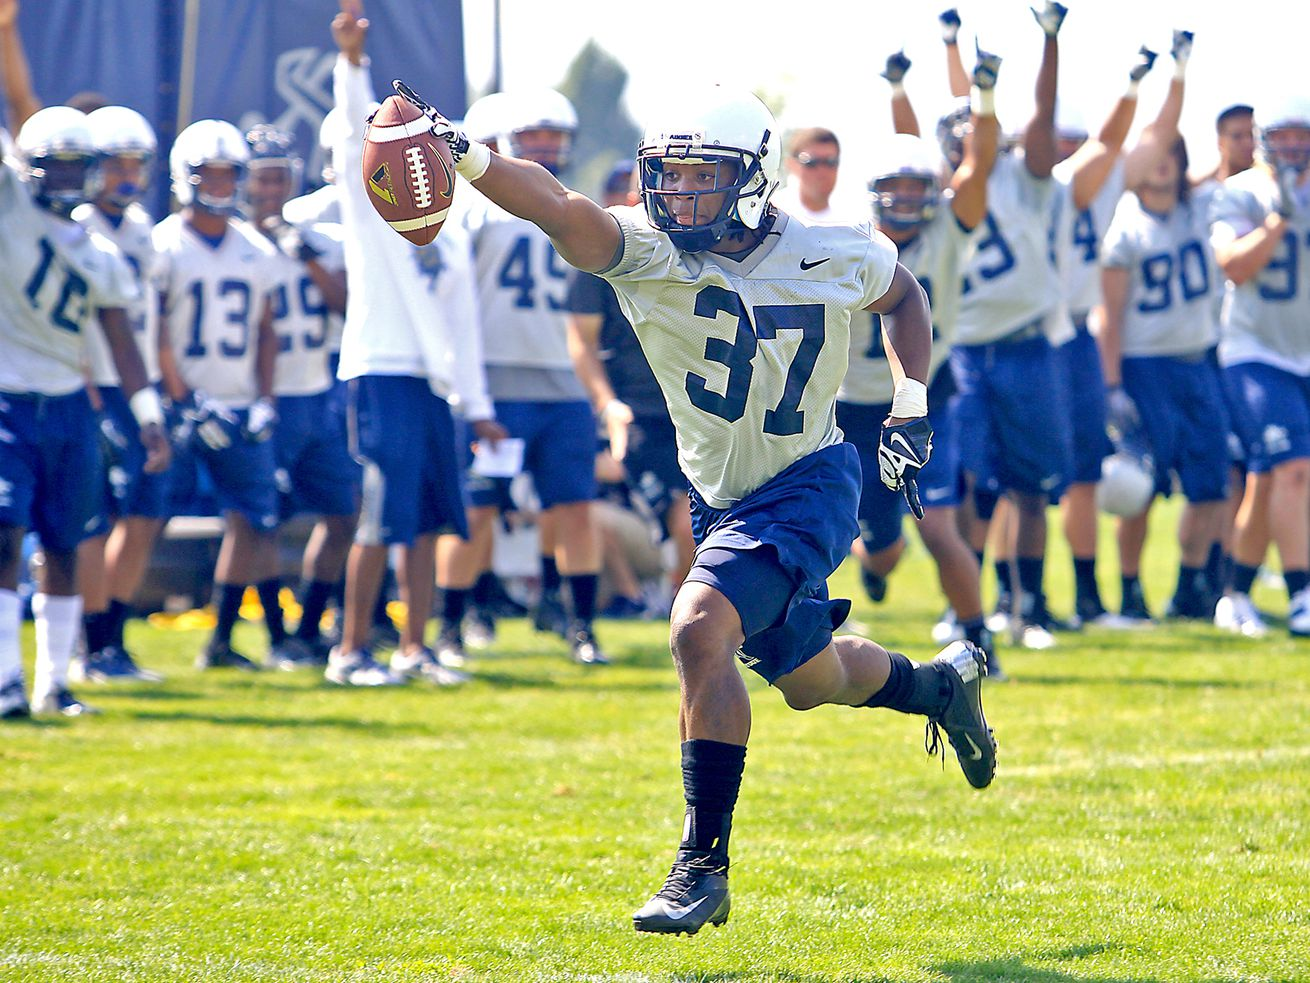 Utah State defensive back Devin Centers celebrates an interception to the cheers of his teammates during fall camp in Logan in 2016. A recent NCAA proposal for an extended preseason has been finalized and is expected to be approved, but no one knows exactly what it will look like.